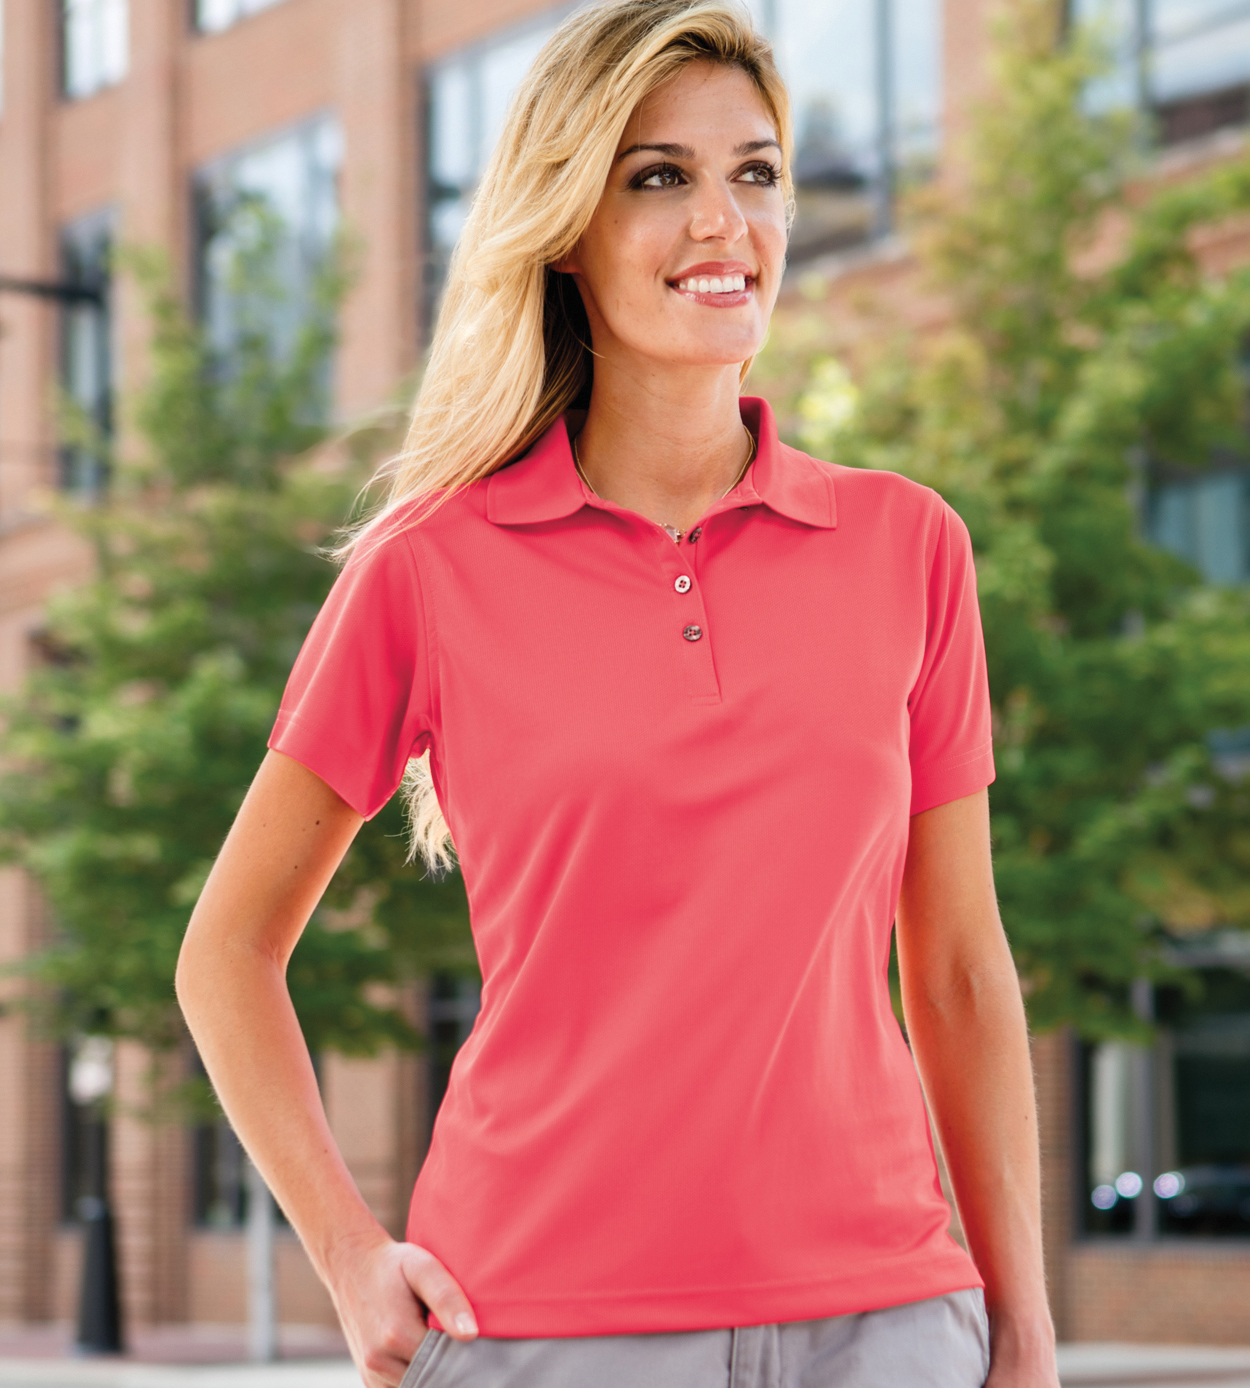 Paragon 104 - Womens Performance Mesh Polo